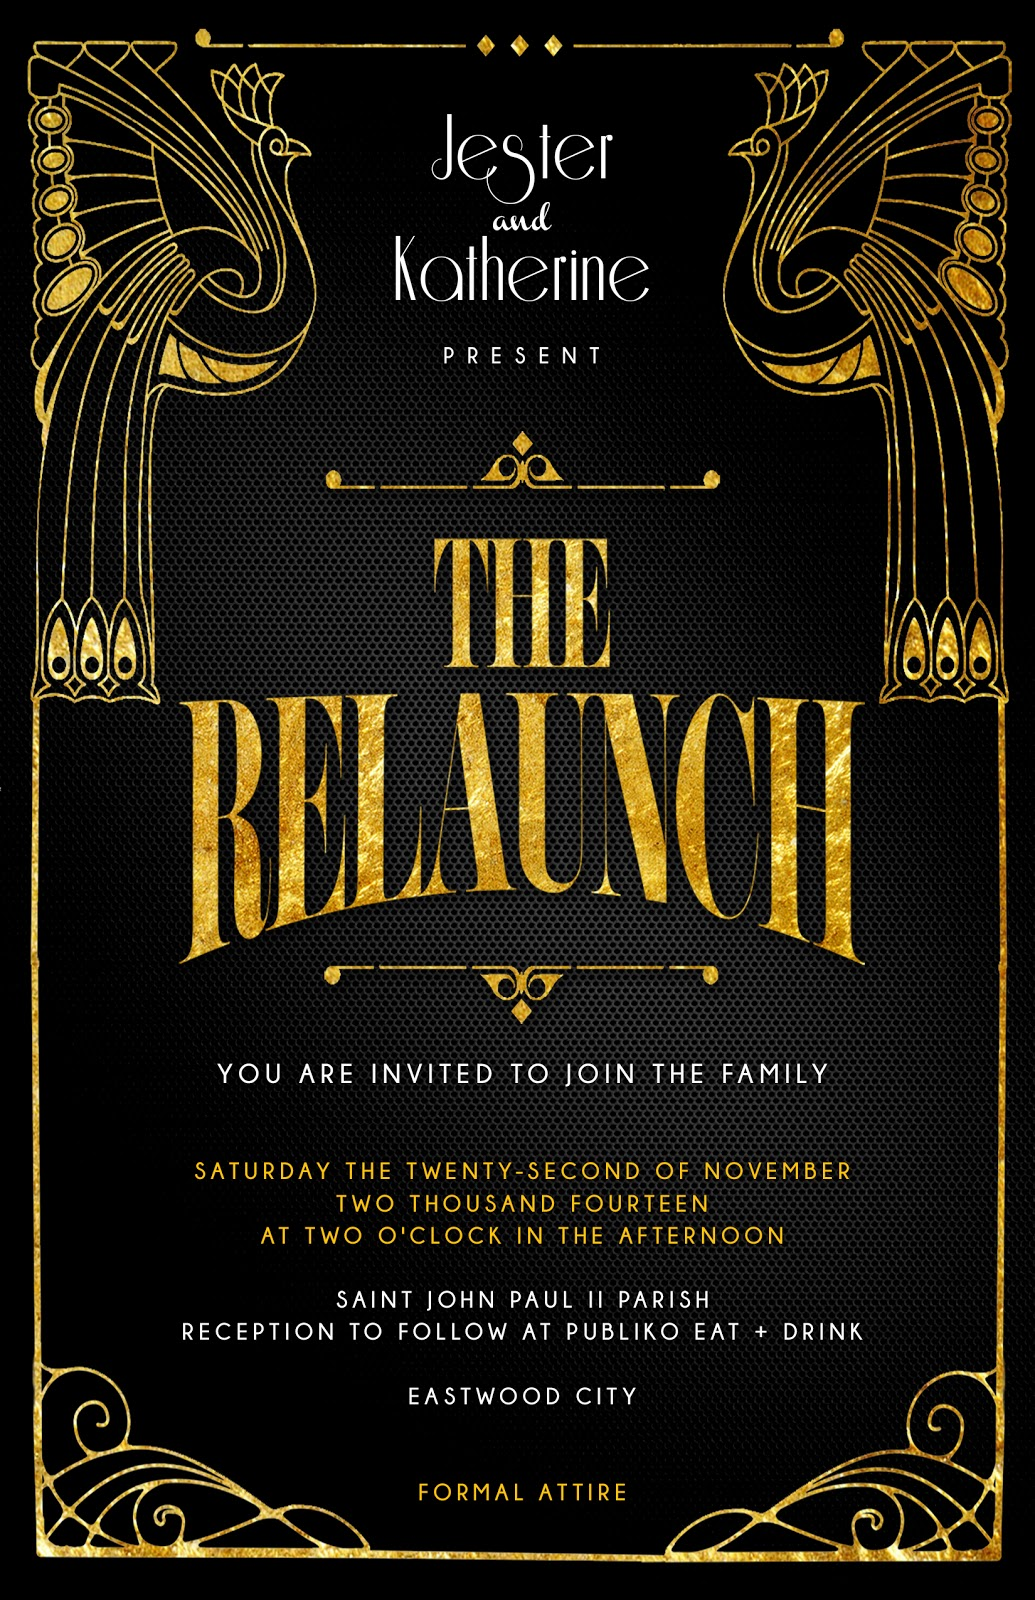 invitation jester kath the relaunch 2014 hs grafik print